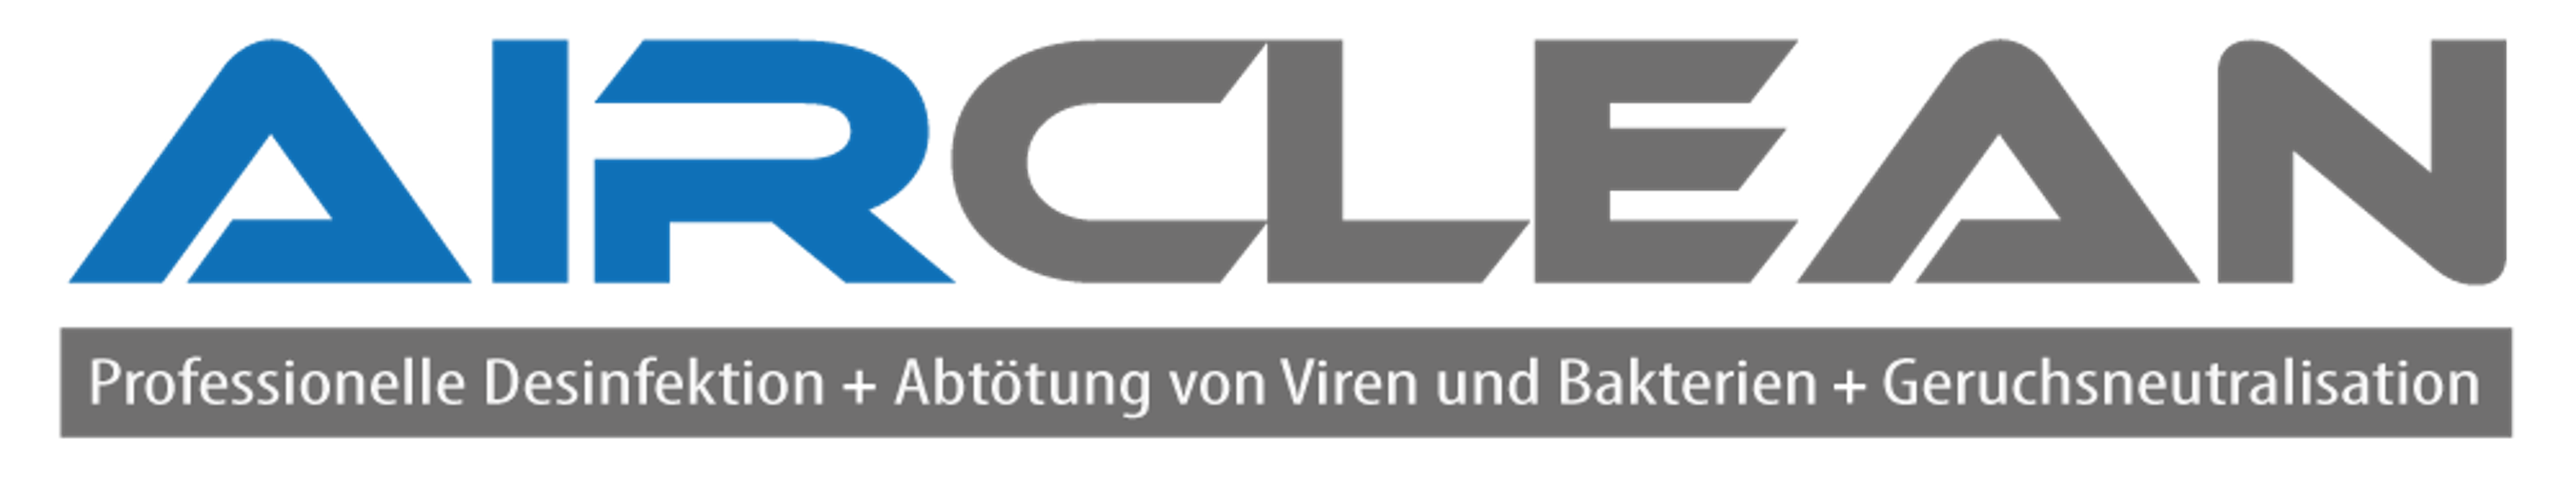 Logo von Air-Clean Desinfektion